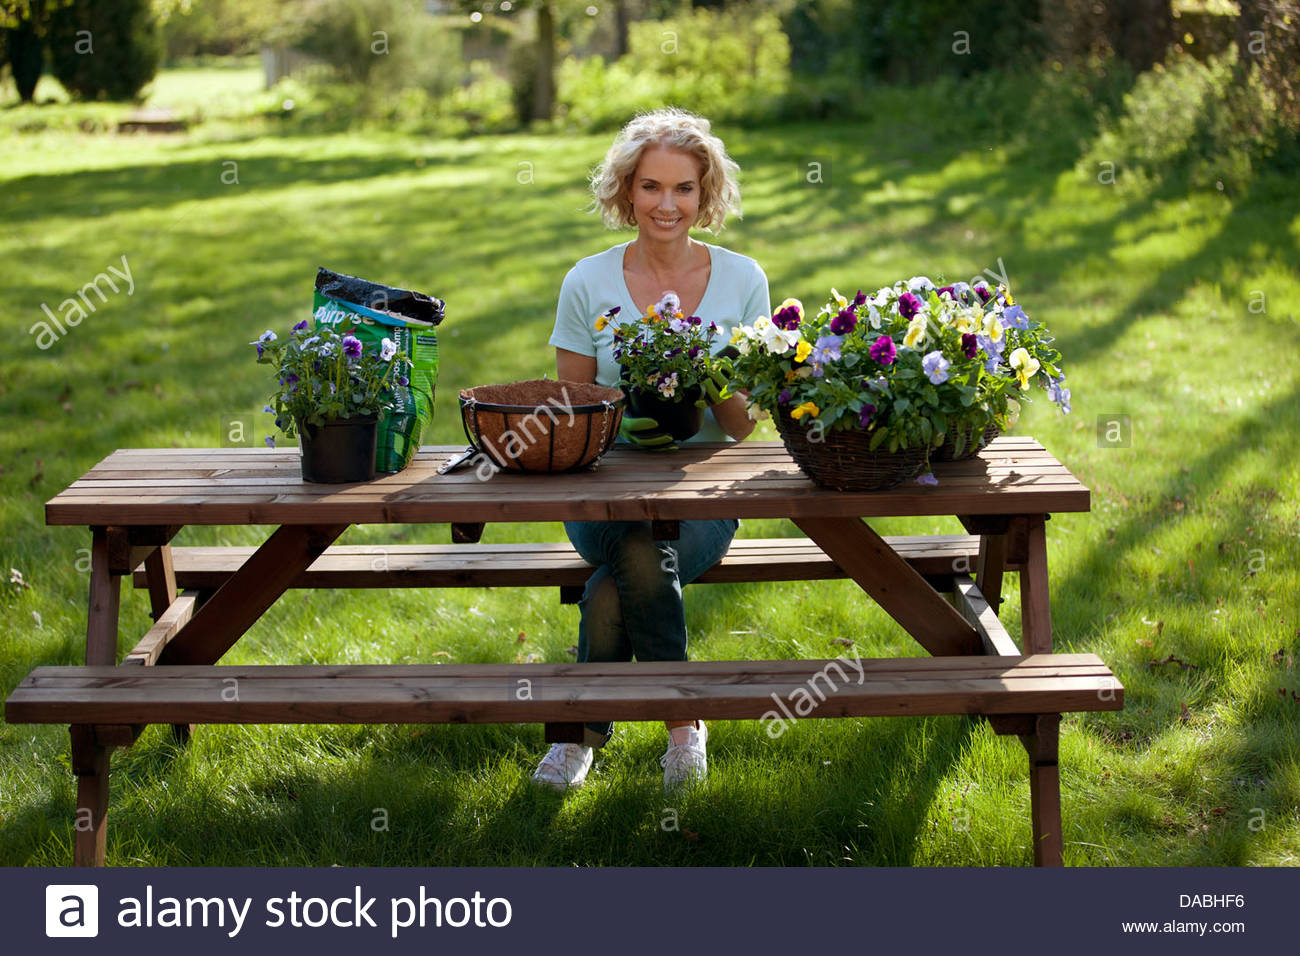 A mature woman sitting at a garden bench planting hanging baskets - Stock Image